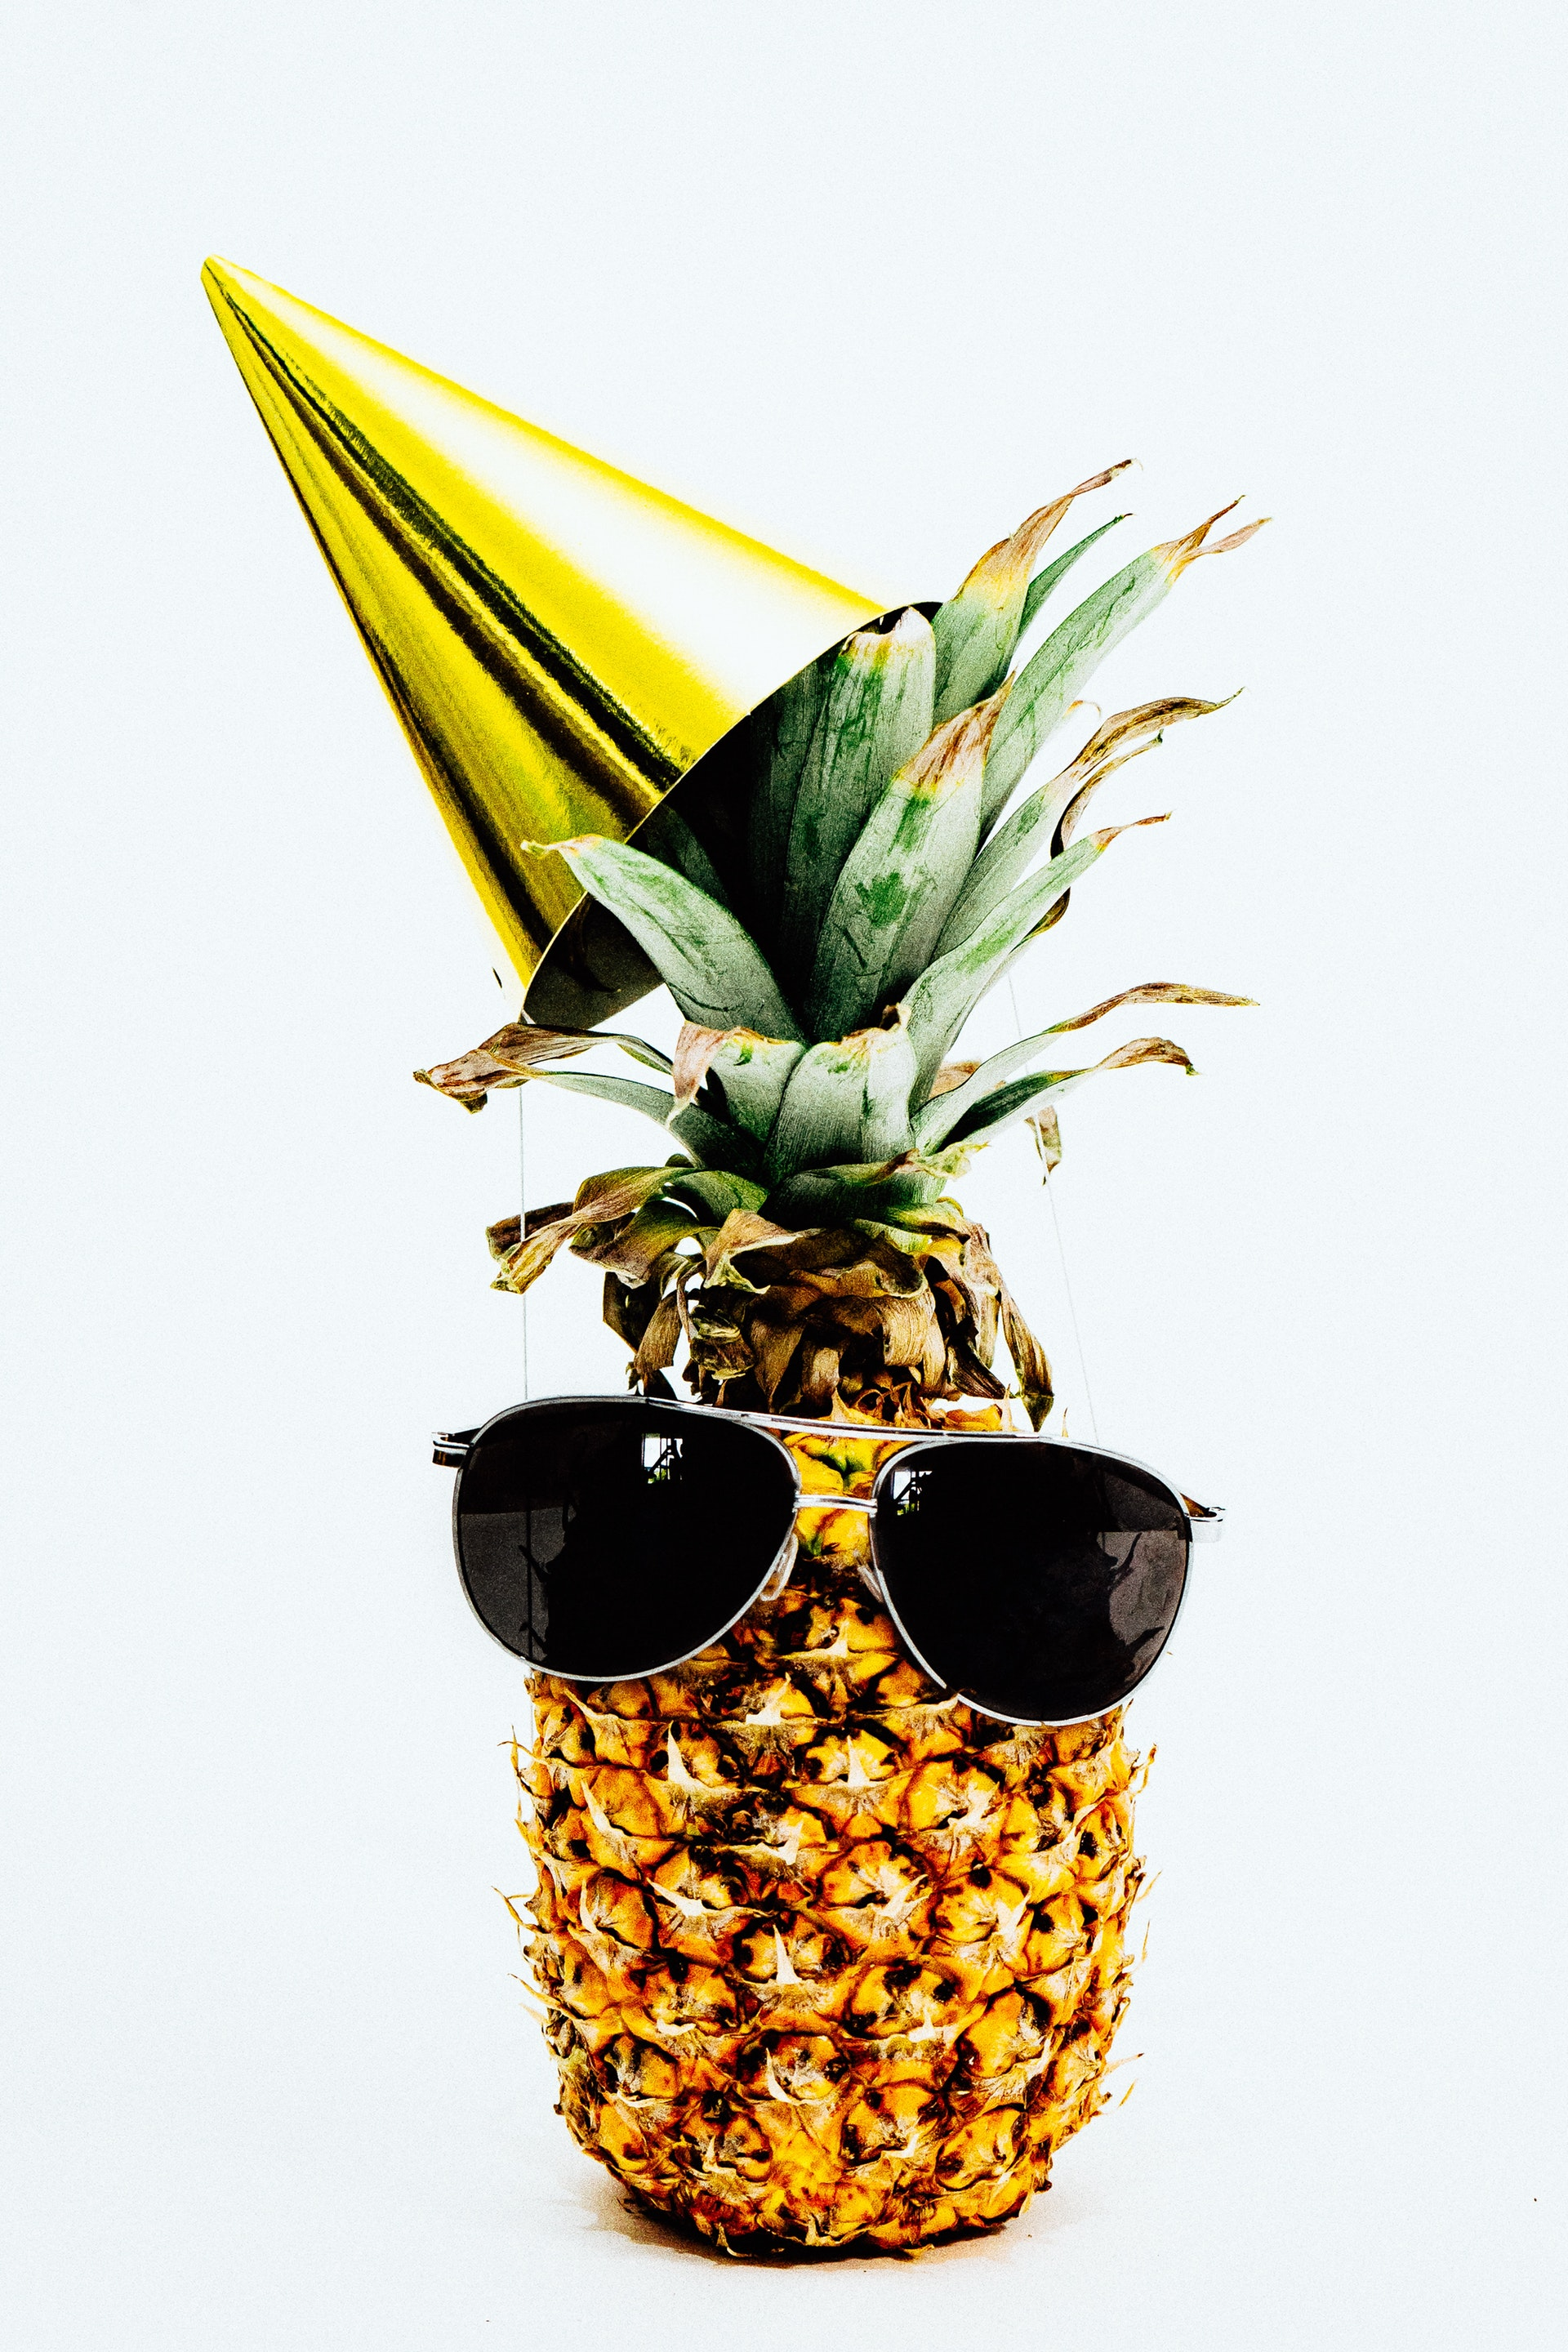 https://www.pexels.com/photo/photo-of-pineapple-wearing-black-aviator-style-sunglasses-and-party-hat-1071878/